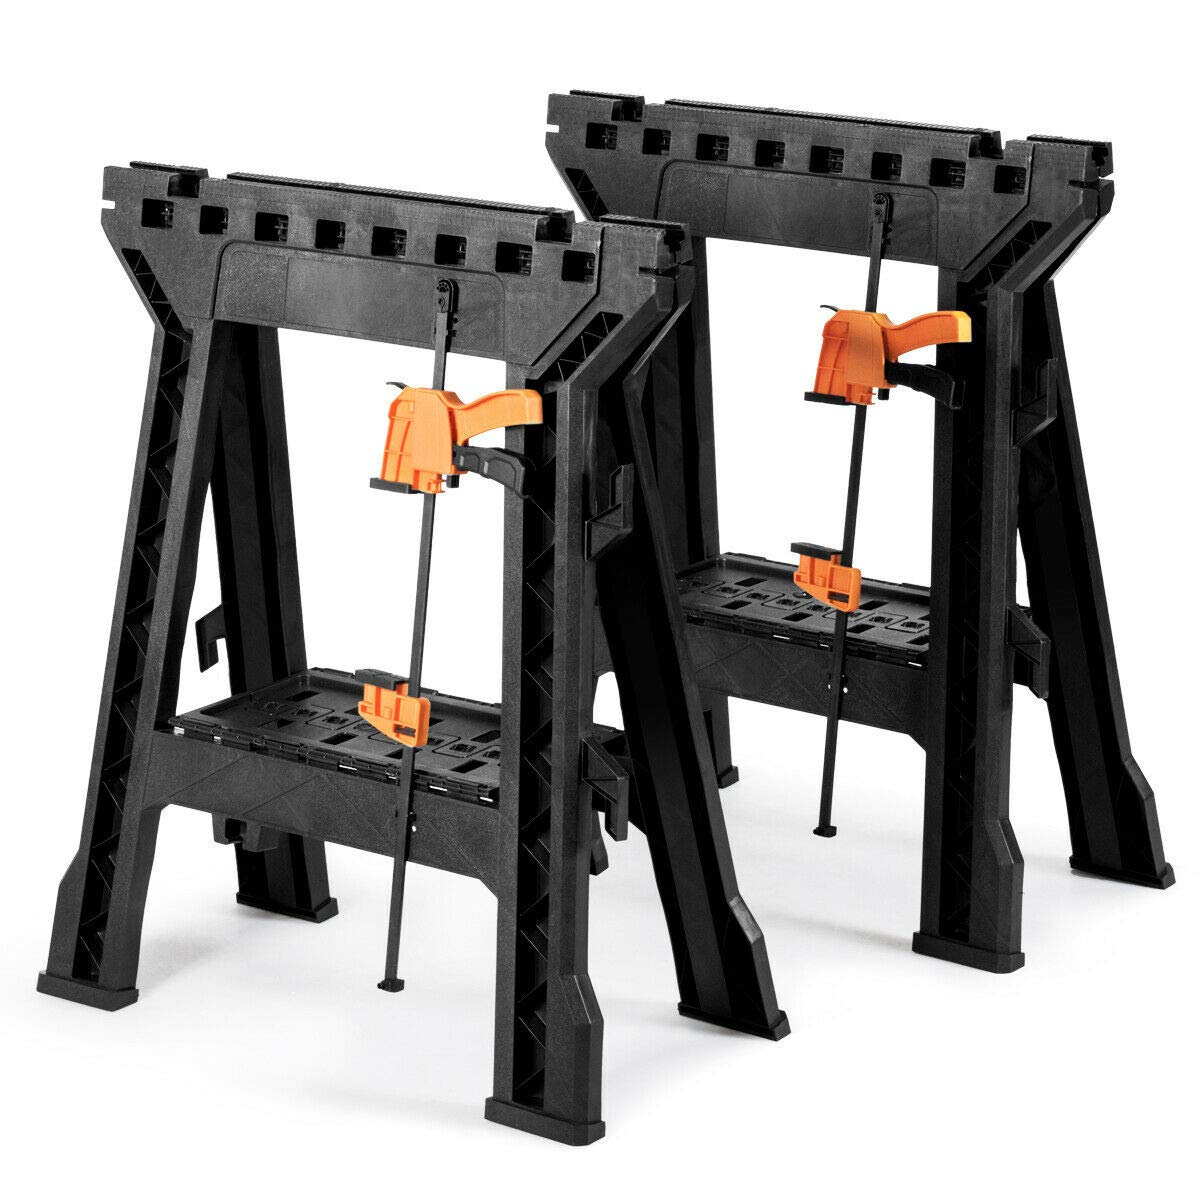 2 Pack Folding Sawhorse with Bar Clamps by AchieveUSA